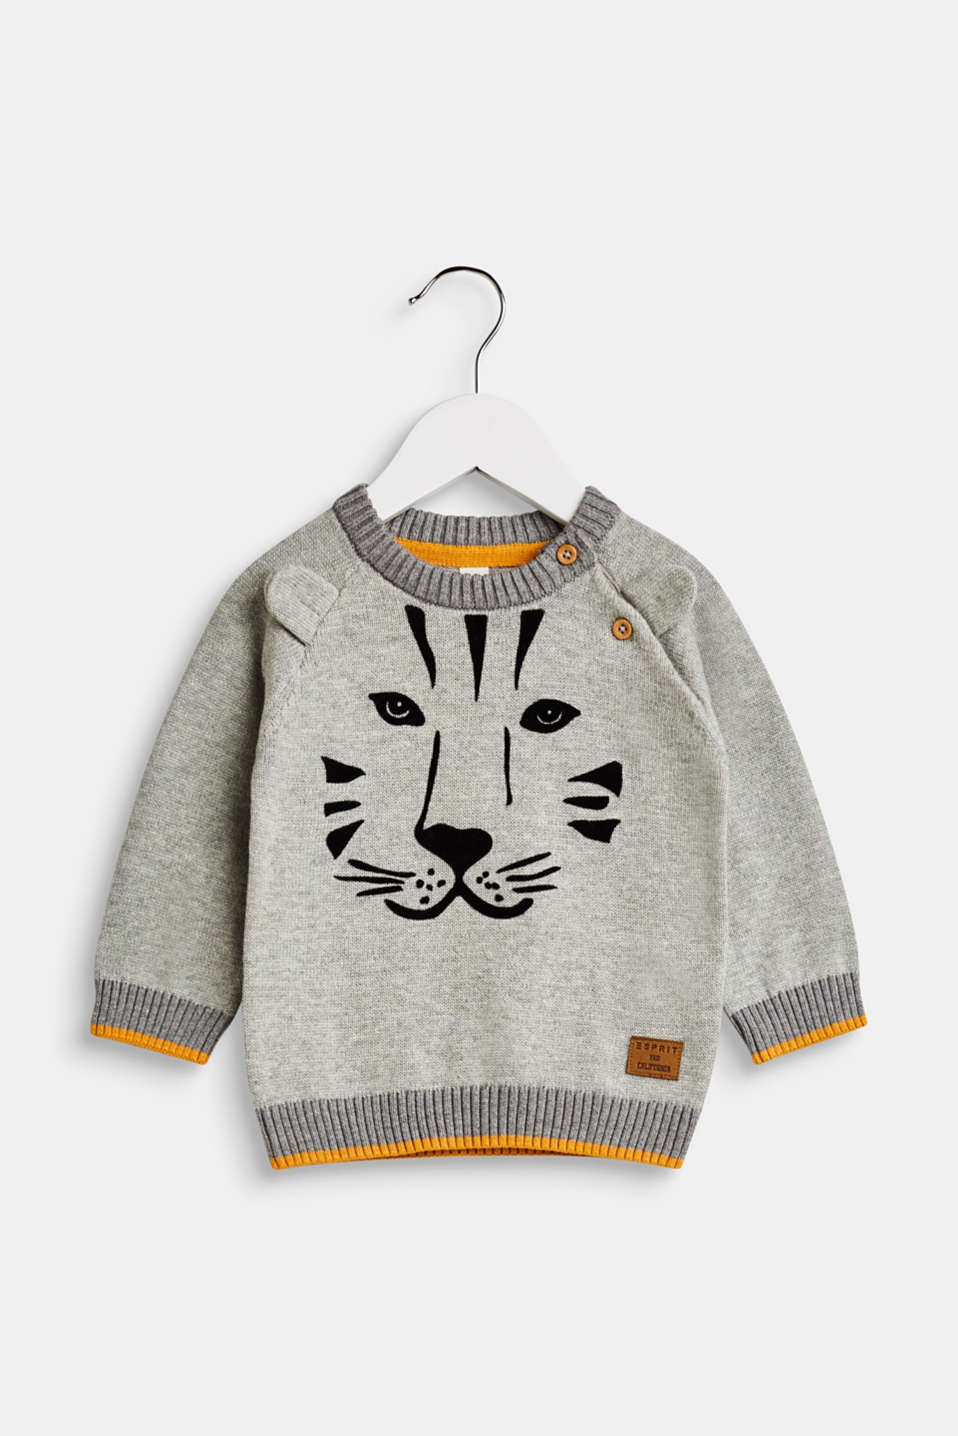 Esprit - Jumper with a tiger head, 100% cotton